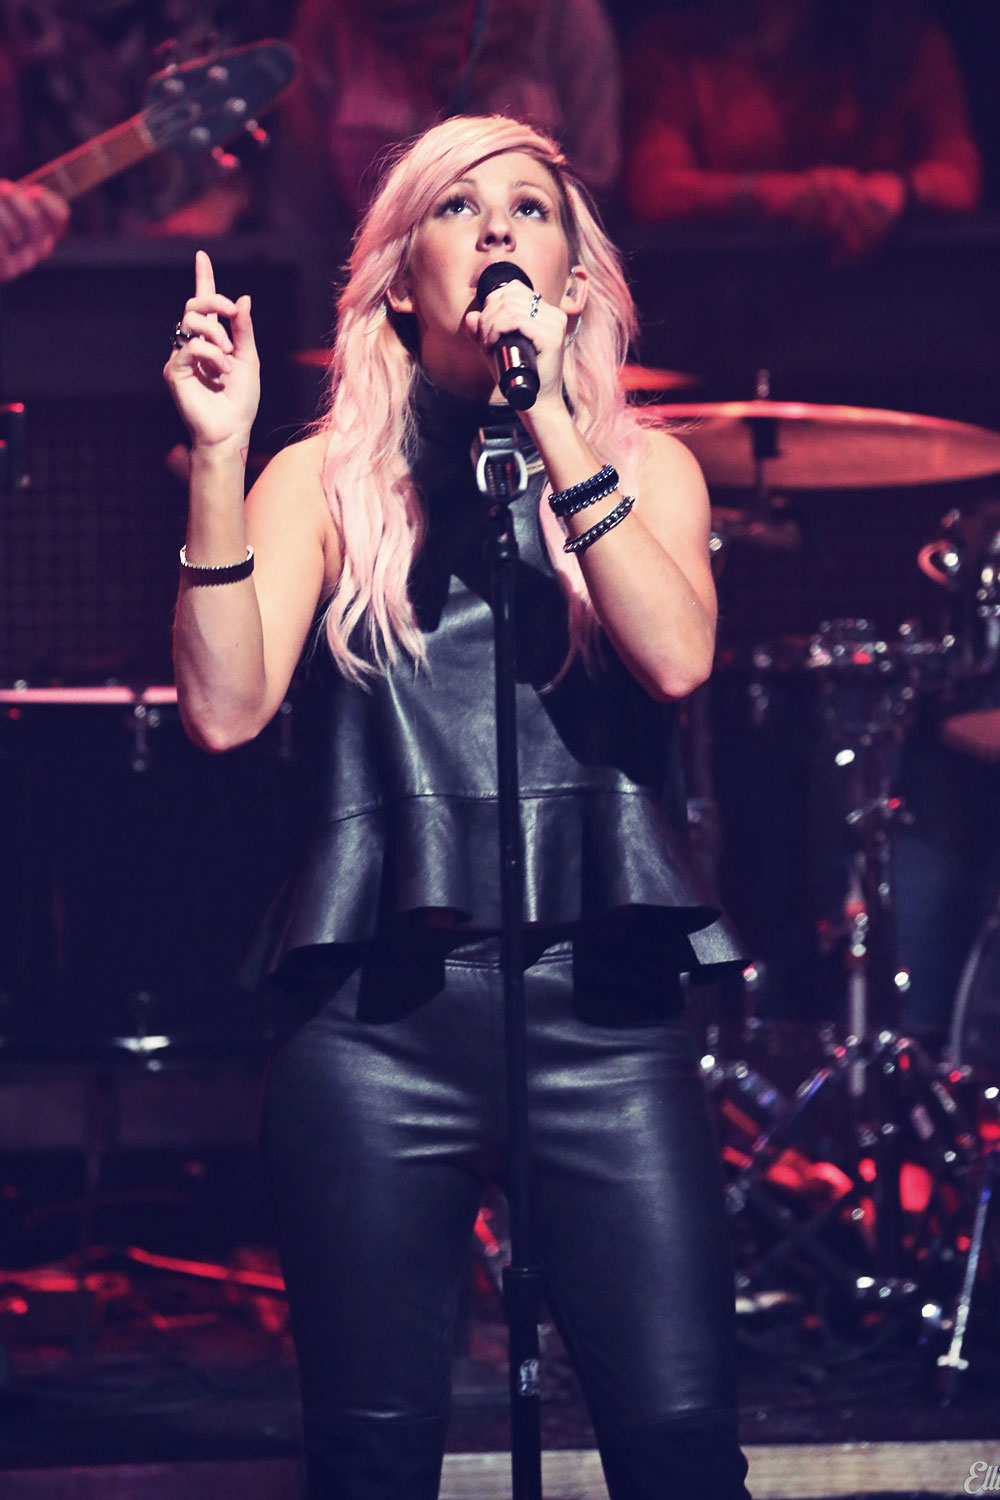 Ellie Goulding at Late Night With Jimmy Fallon